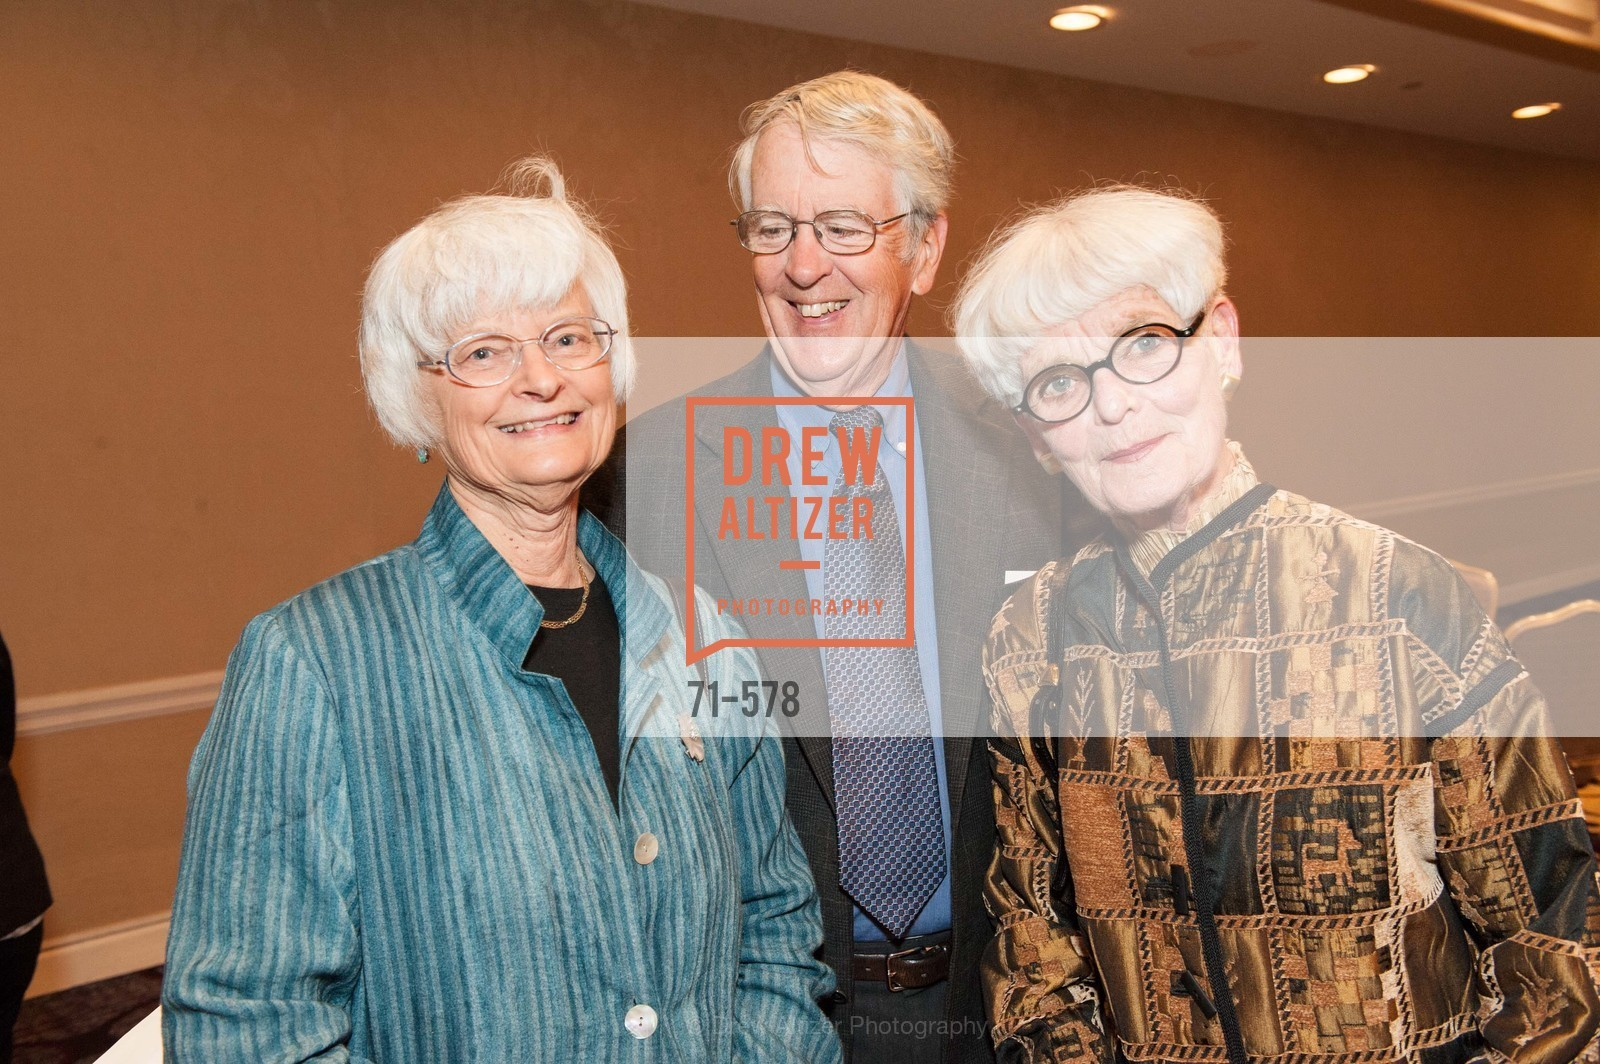 Ann Hall, Alex Wong, Lee Schweizer, HOMELESS PRENATAL Annual Luncheon 2014, US, October 1st, 2014,Drew Altizer, Drew Altizer Photography, full-service agency, private events, San Francisco photographer, photographer california